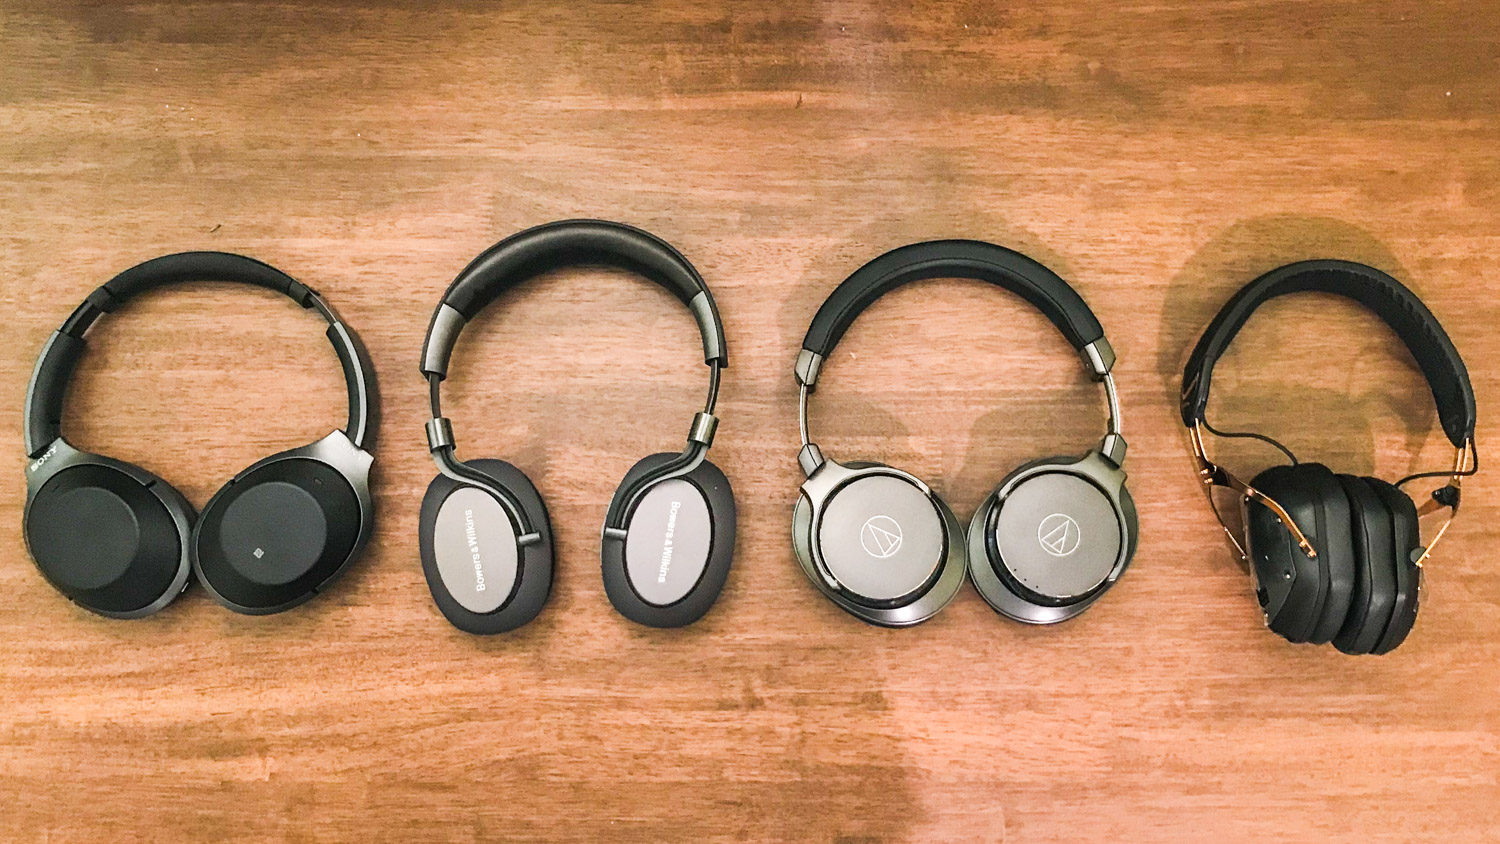 I am once again in the market for Bluetooth headphones. My last pair, the first edition Sony MDR-1RBT, served me very well for the last four-and-a-half ...